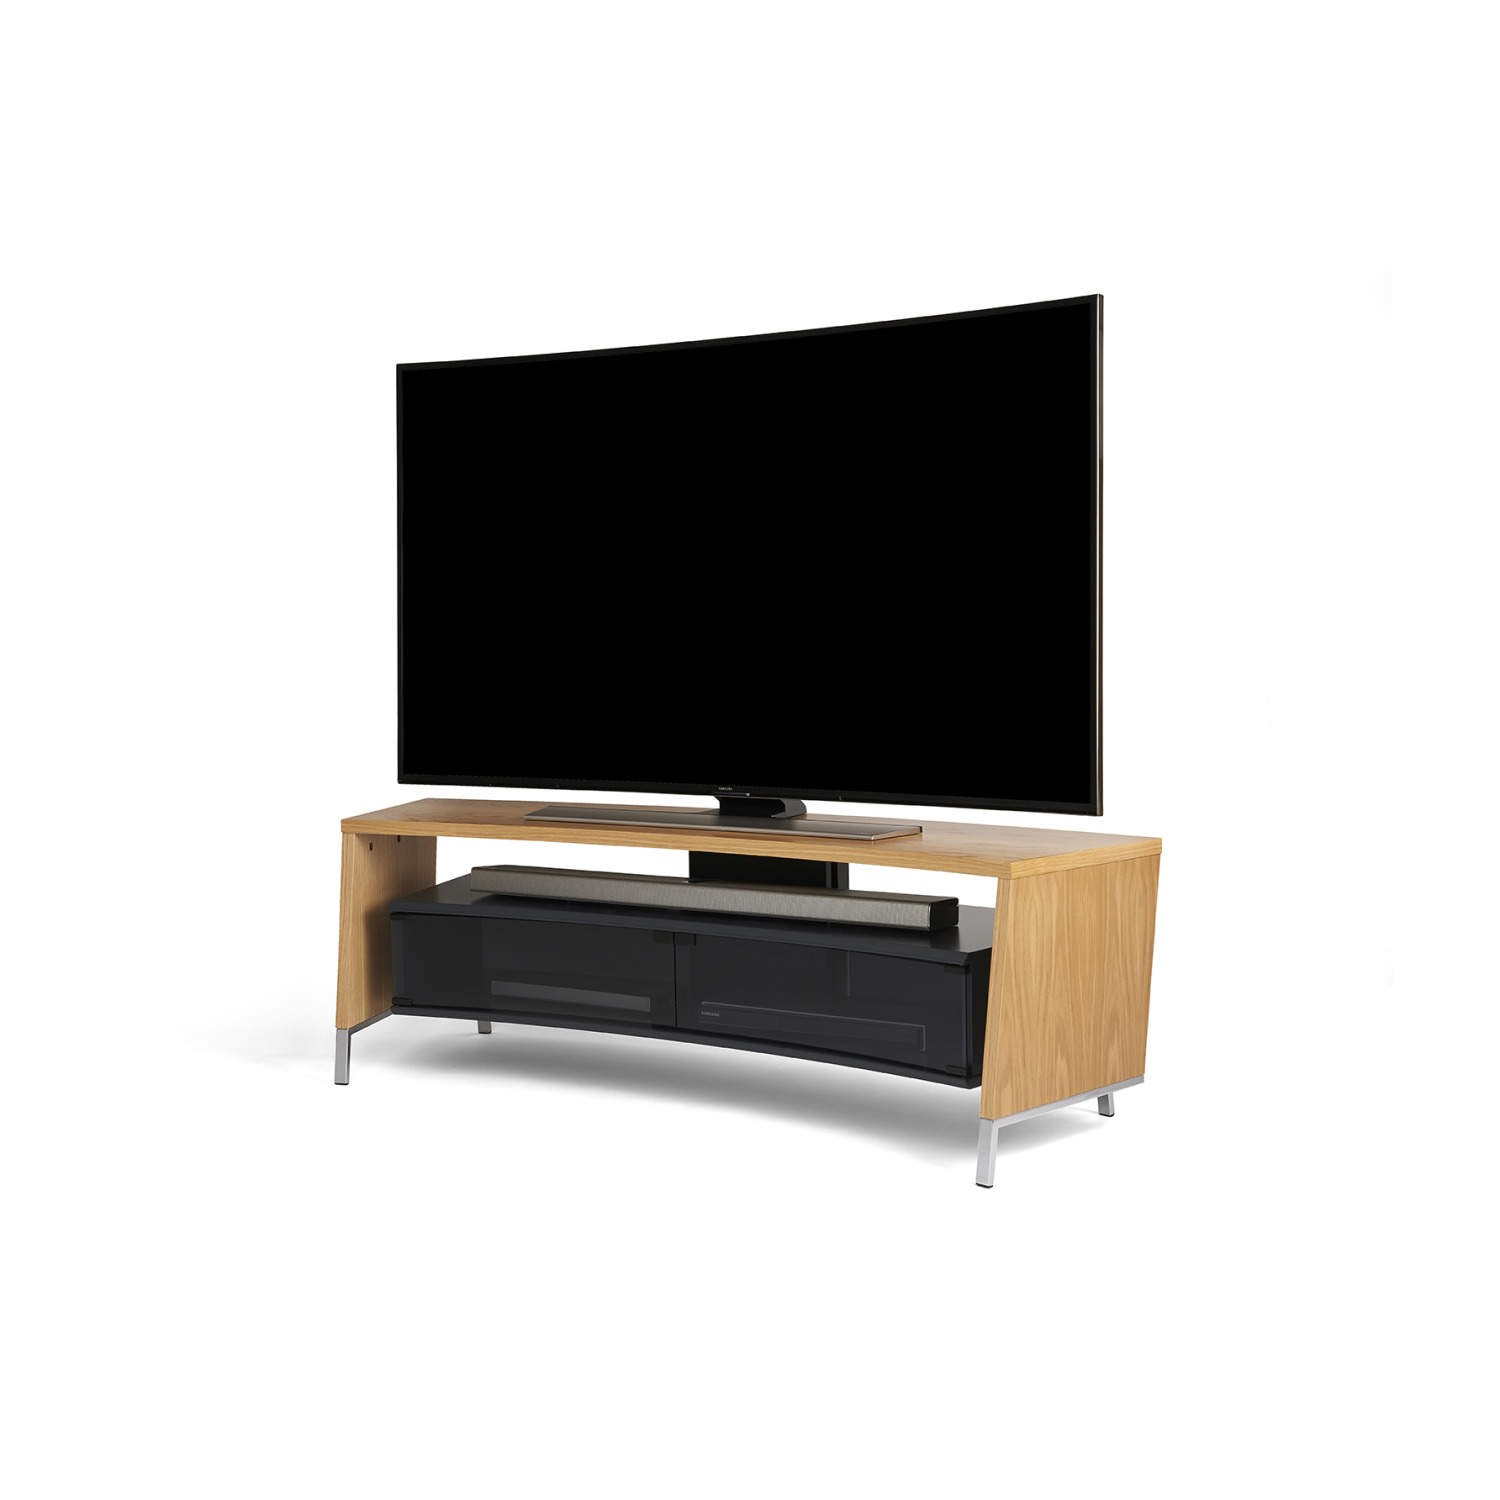 Off The Wall Curved 1500 Oak Tv Cabinet Up To 65 Inch Crv 1500 Oak